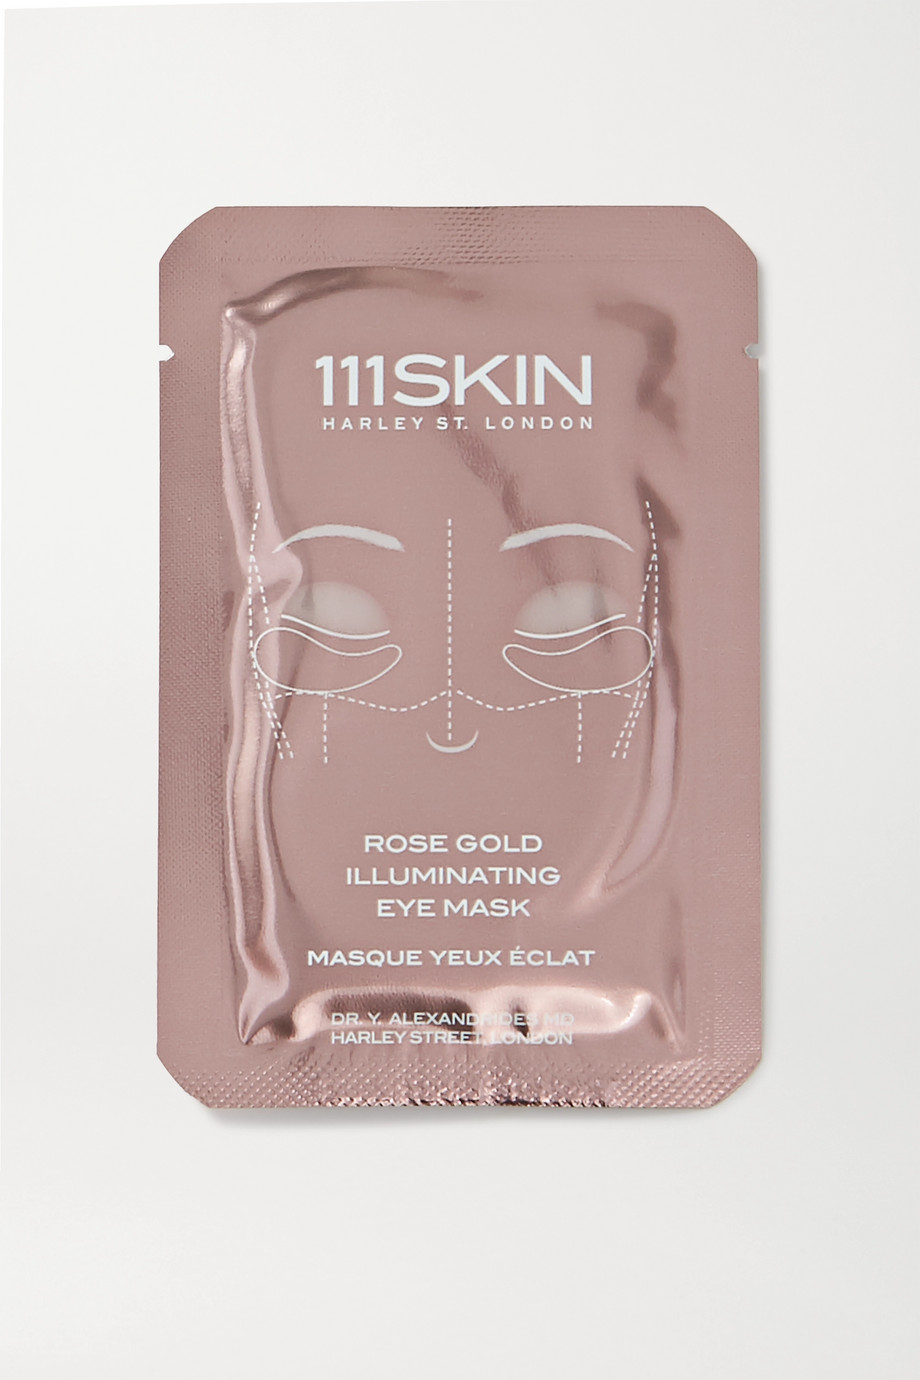 111SKIN Rose Gold Illuminating Eye Mask x 8